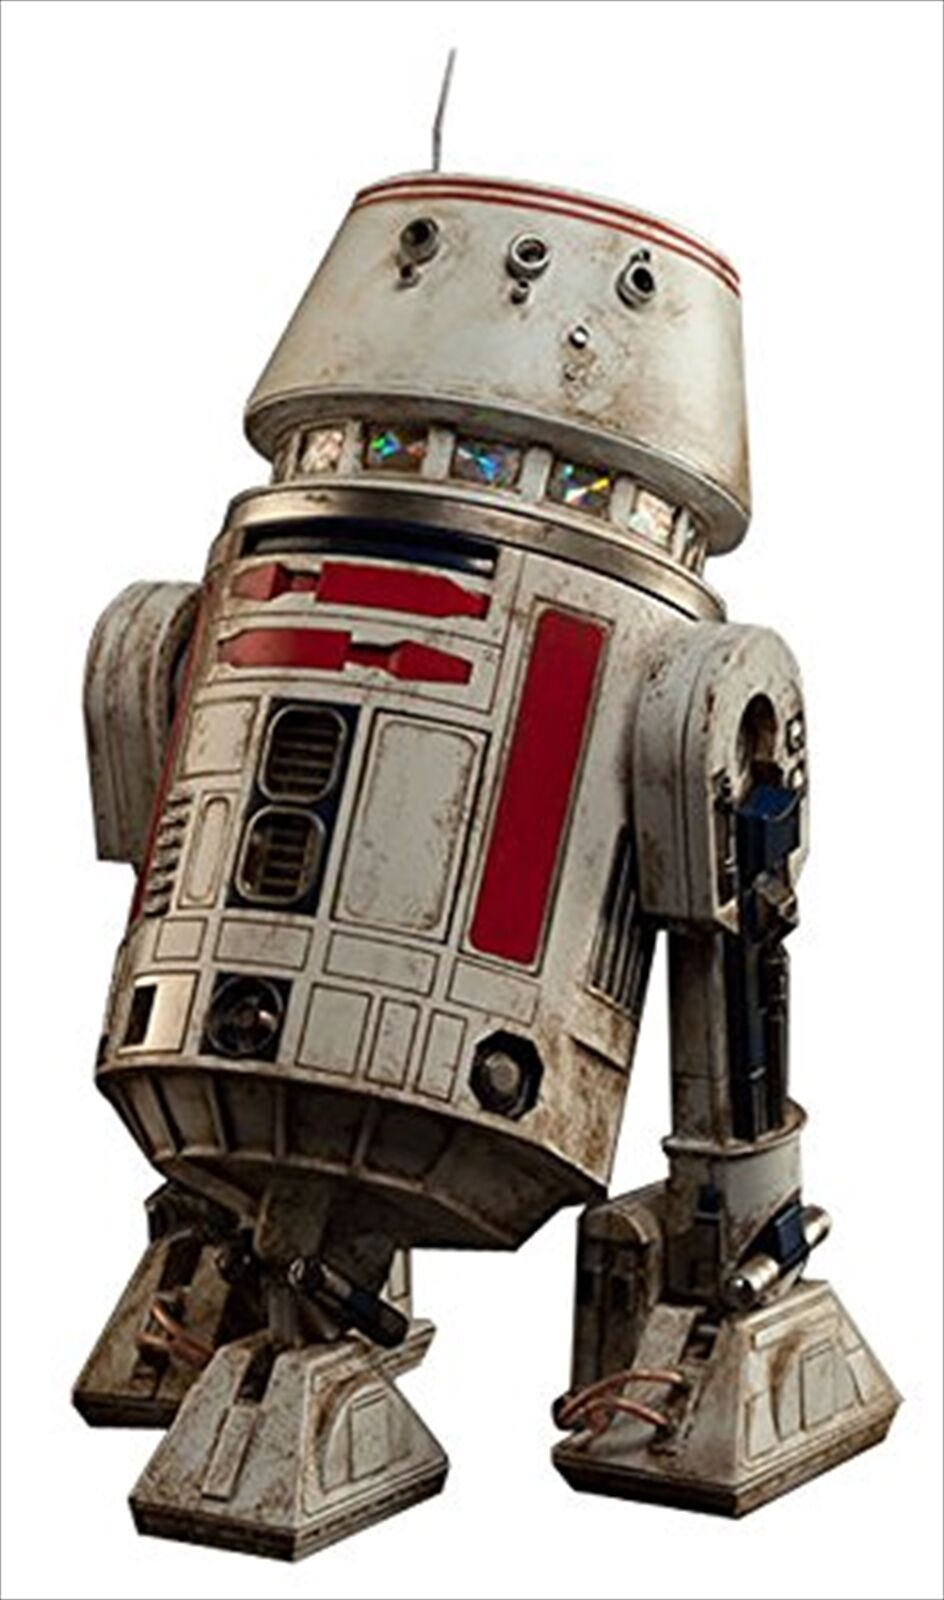 SideShow Droid of Star Wars R5-D4 Star Wars 1/6 Scale Painted Action Figure W/T